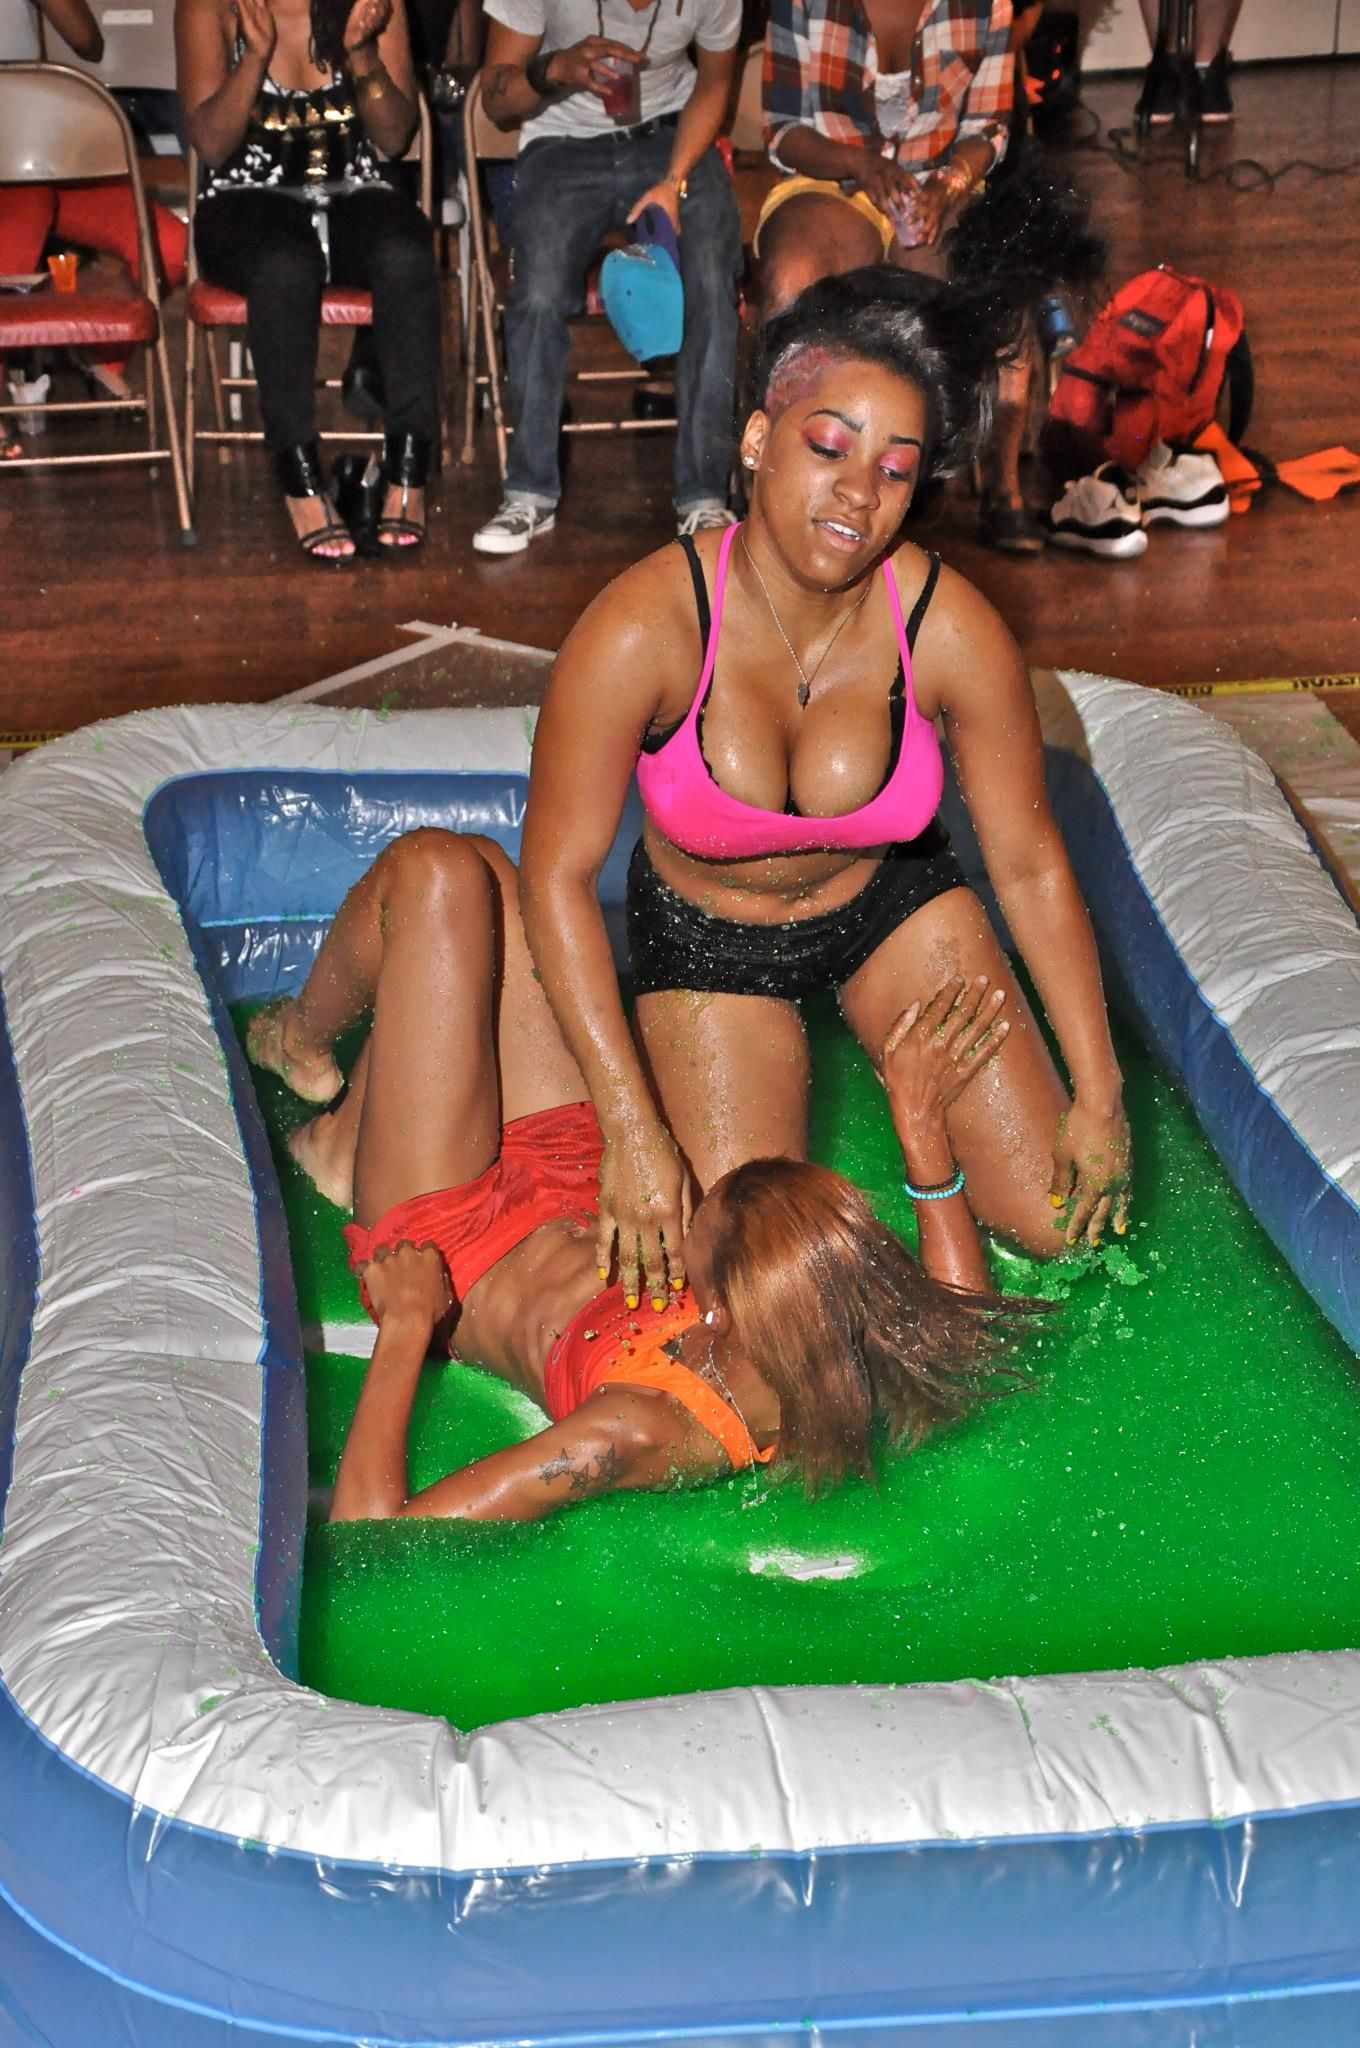 Bikini jell o wrestling gone wrong